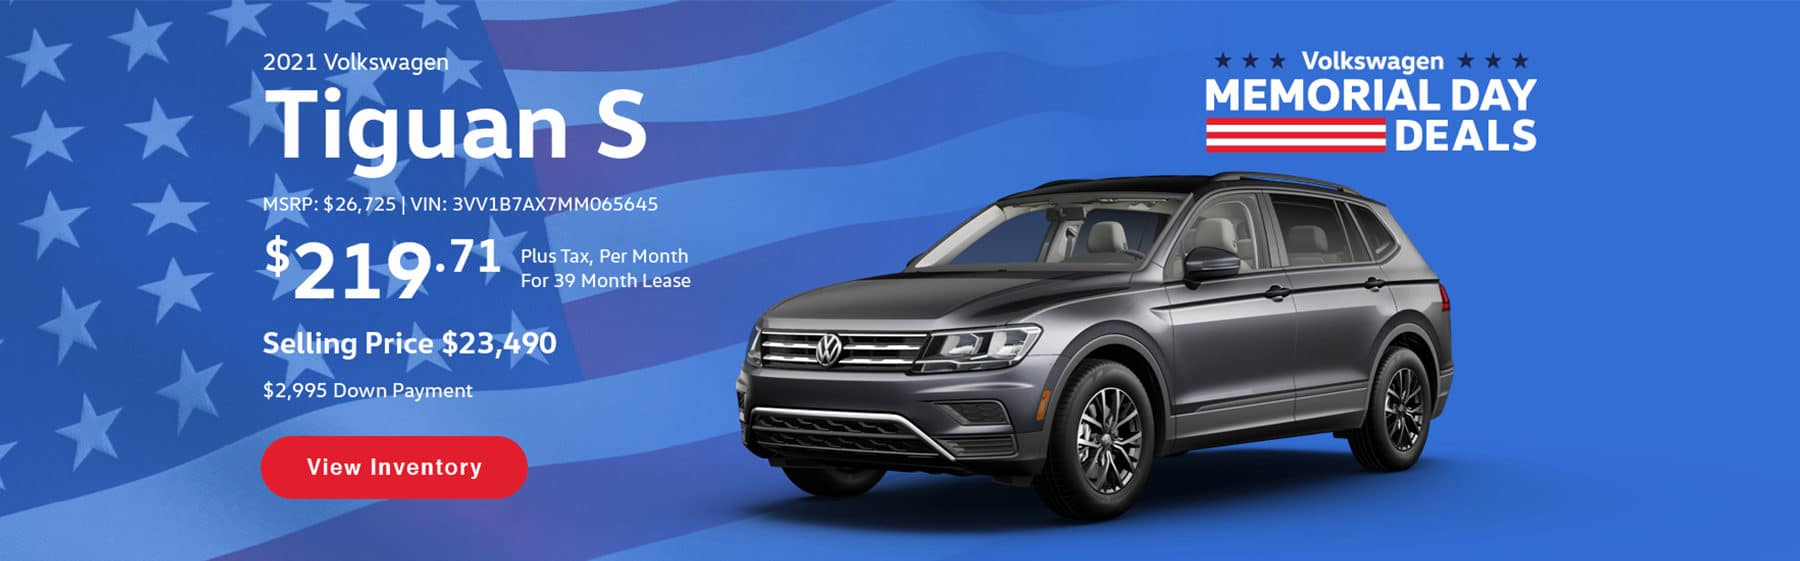 Lease the 2021 Volkswagen Tiguan S for $219.71 per month, plus tax, for 39 months. Selling price is $23,490.